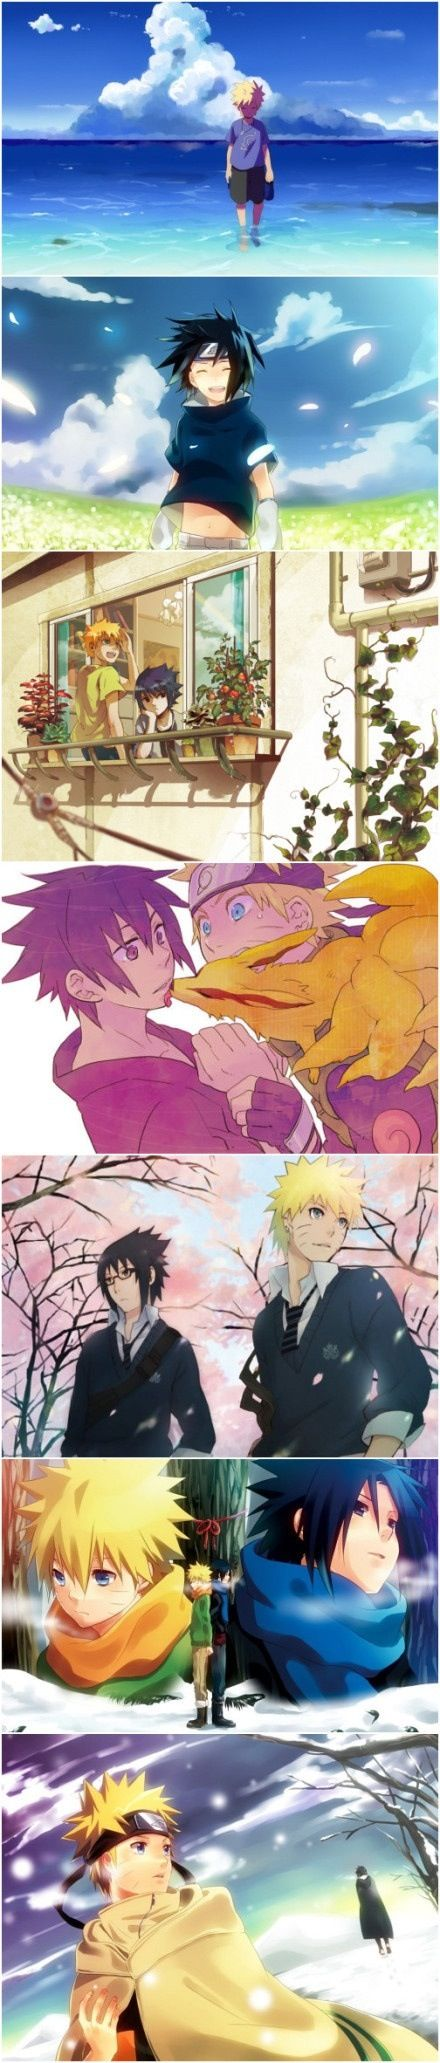 Naruto and Sasuke. WOULD HAVE CHANGED THE ENBTIRE PLOTLINE IF SASUKE WASNT SOUChE AN ASS AND BECAME NARUTOS FRIEND. JUST SAYIN'!